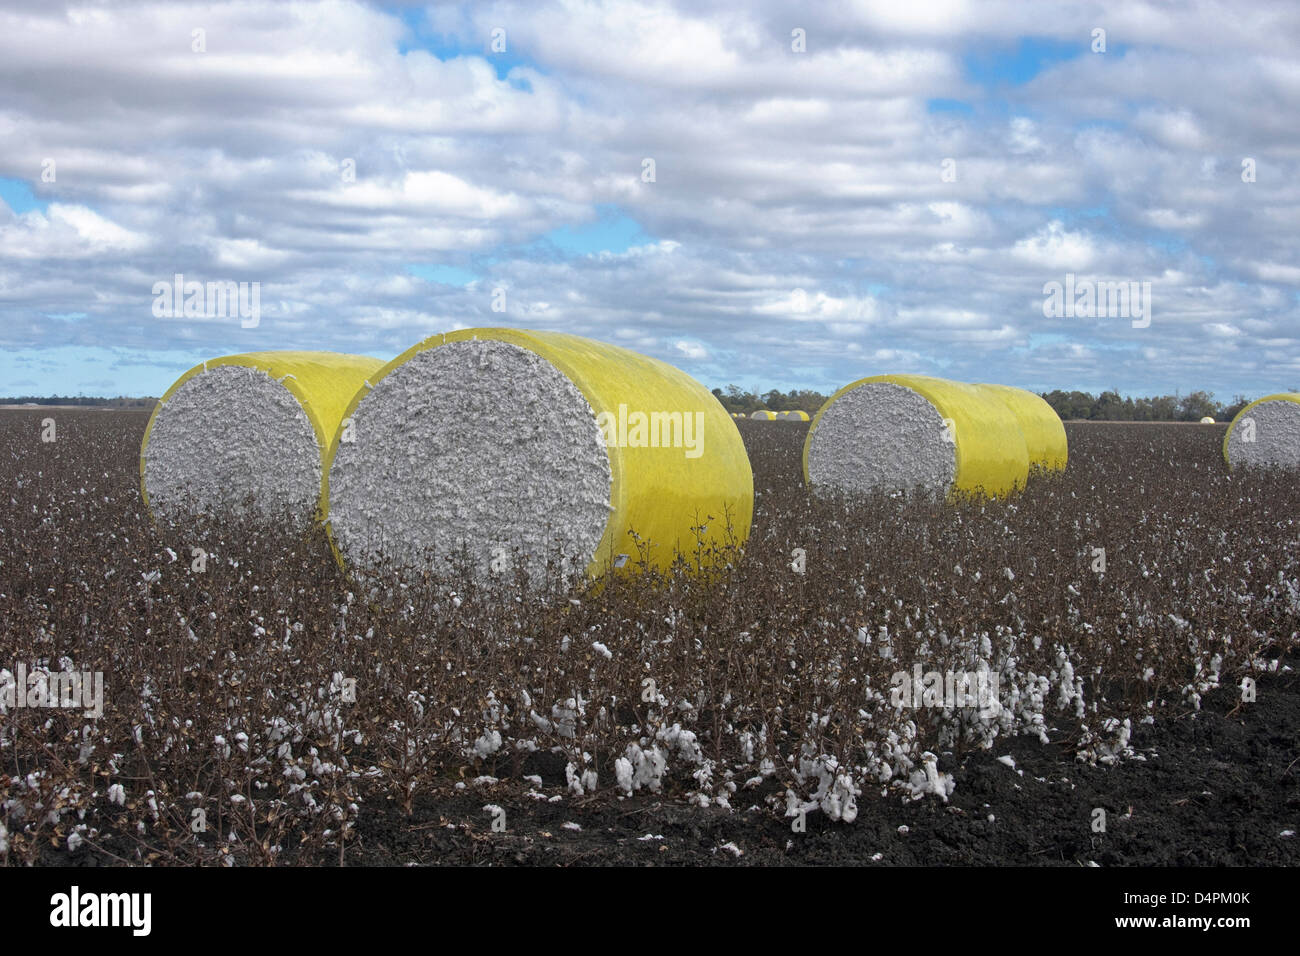 Round bales of harvested cotton wrapped in bright yellow plastic among remains of cotton crop on farm field near - Stock Image